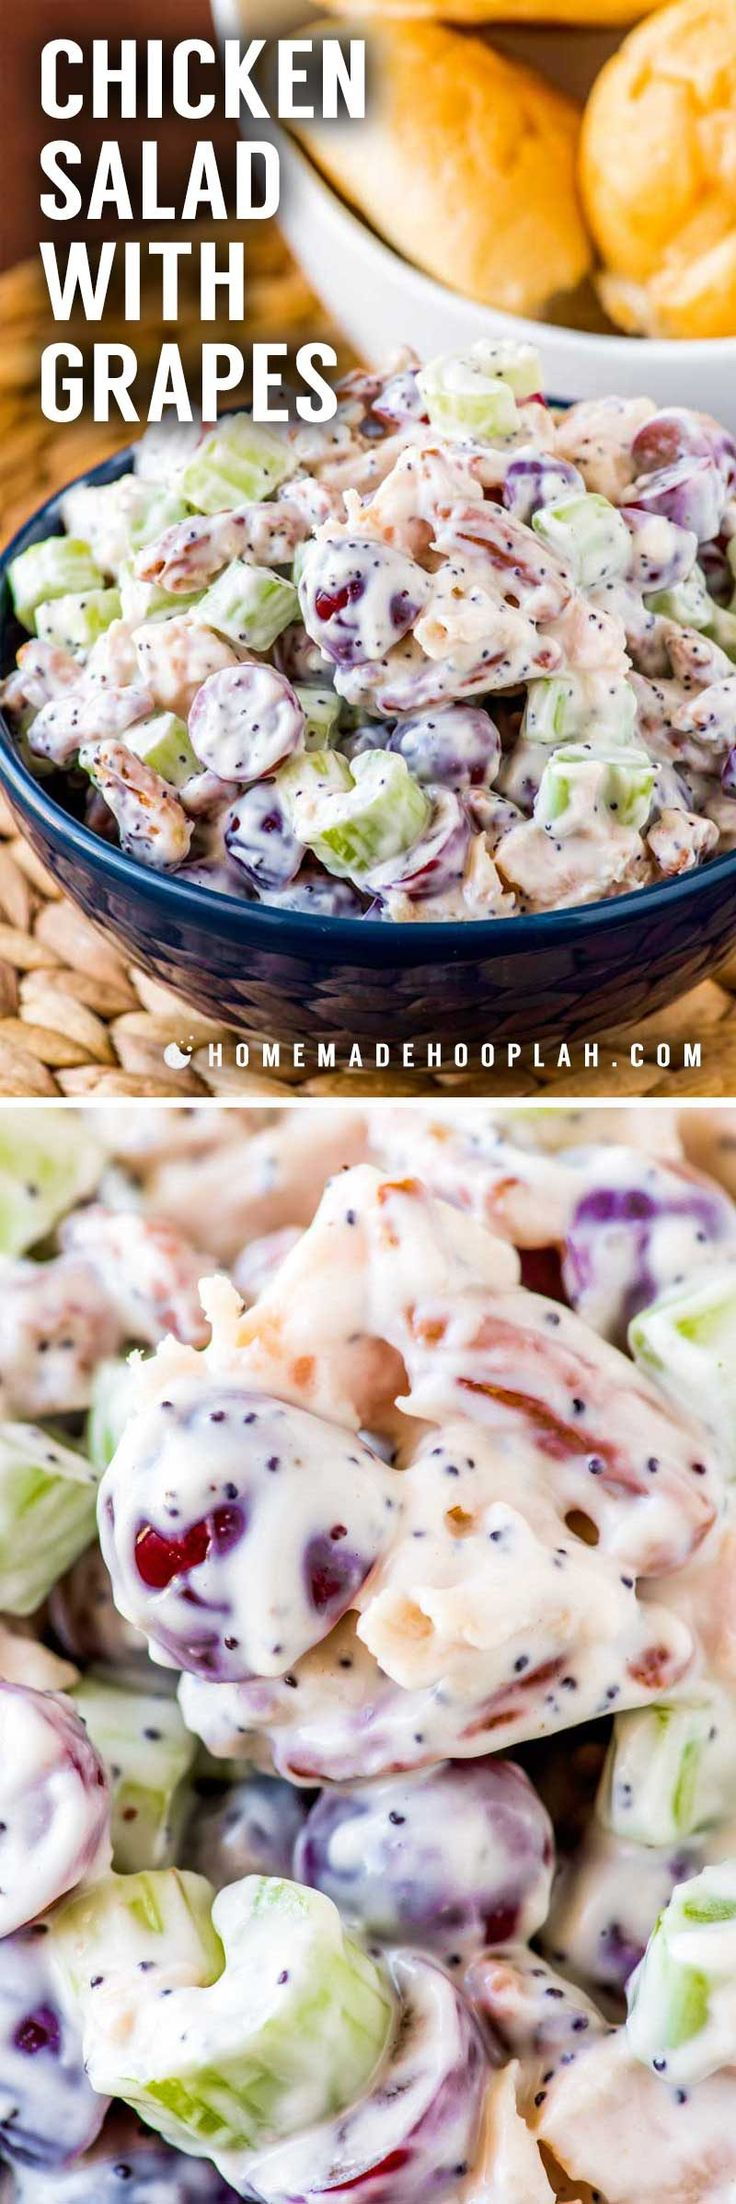 Chicken Salad with Grapes! This sweeter twist on chicken salad with grapes, pecans, celery, poppy seeds, and hints of lemon and honey is perfect as a side dish or on a sandwich!